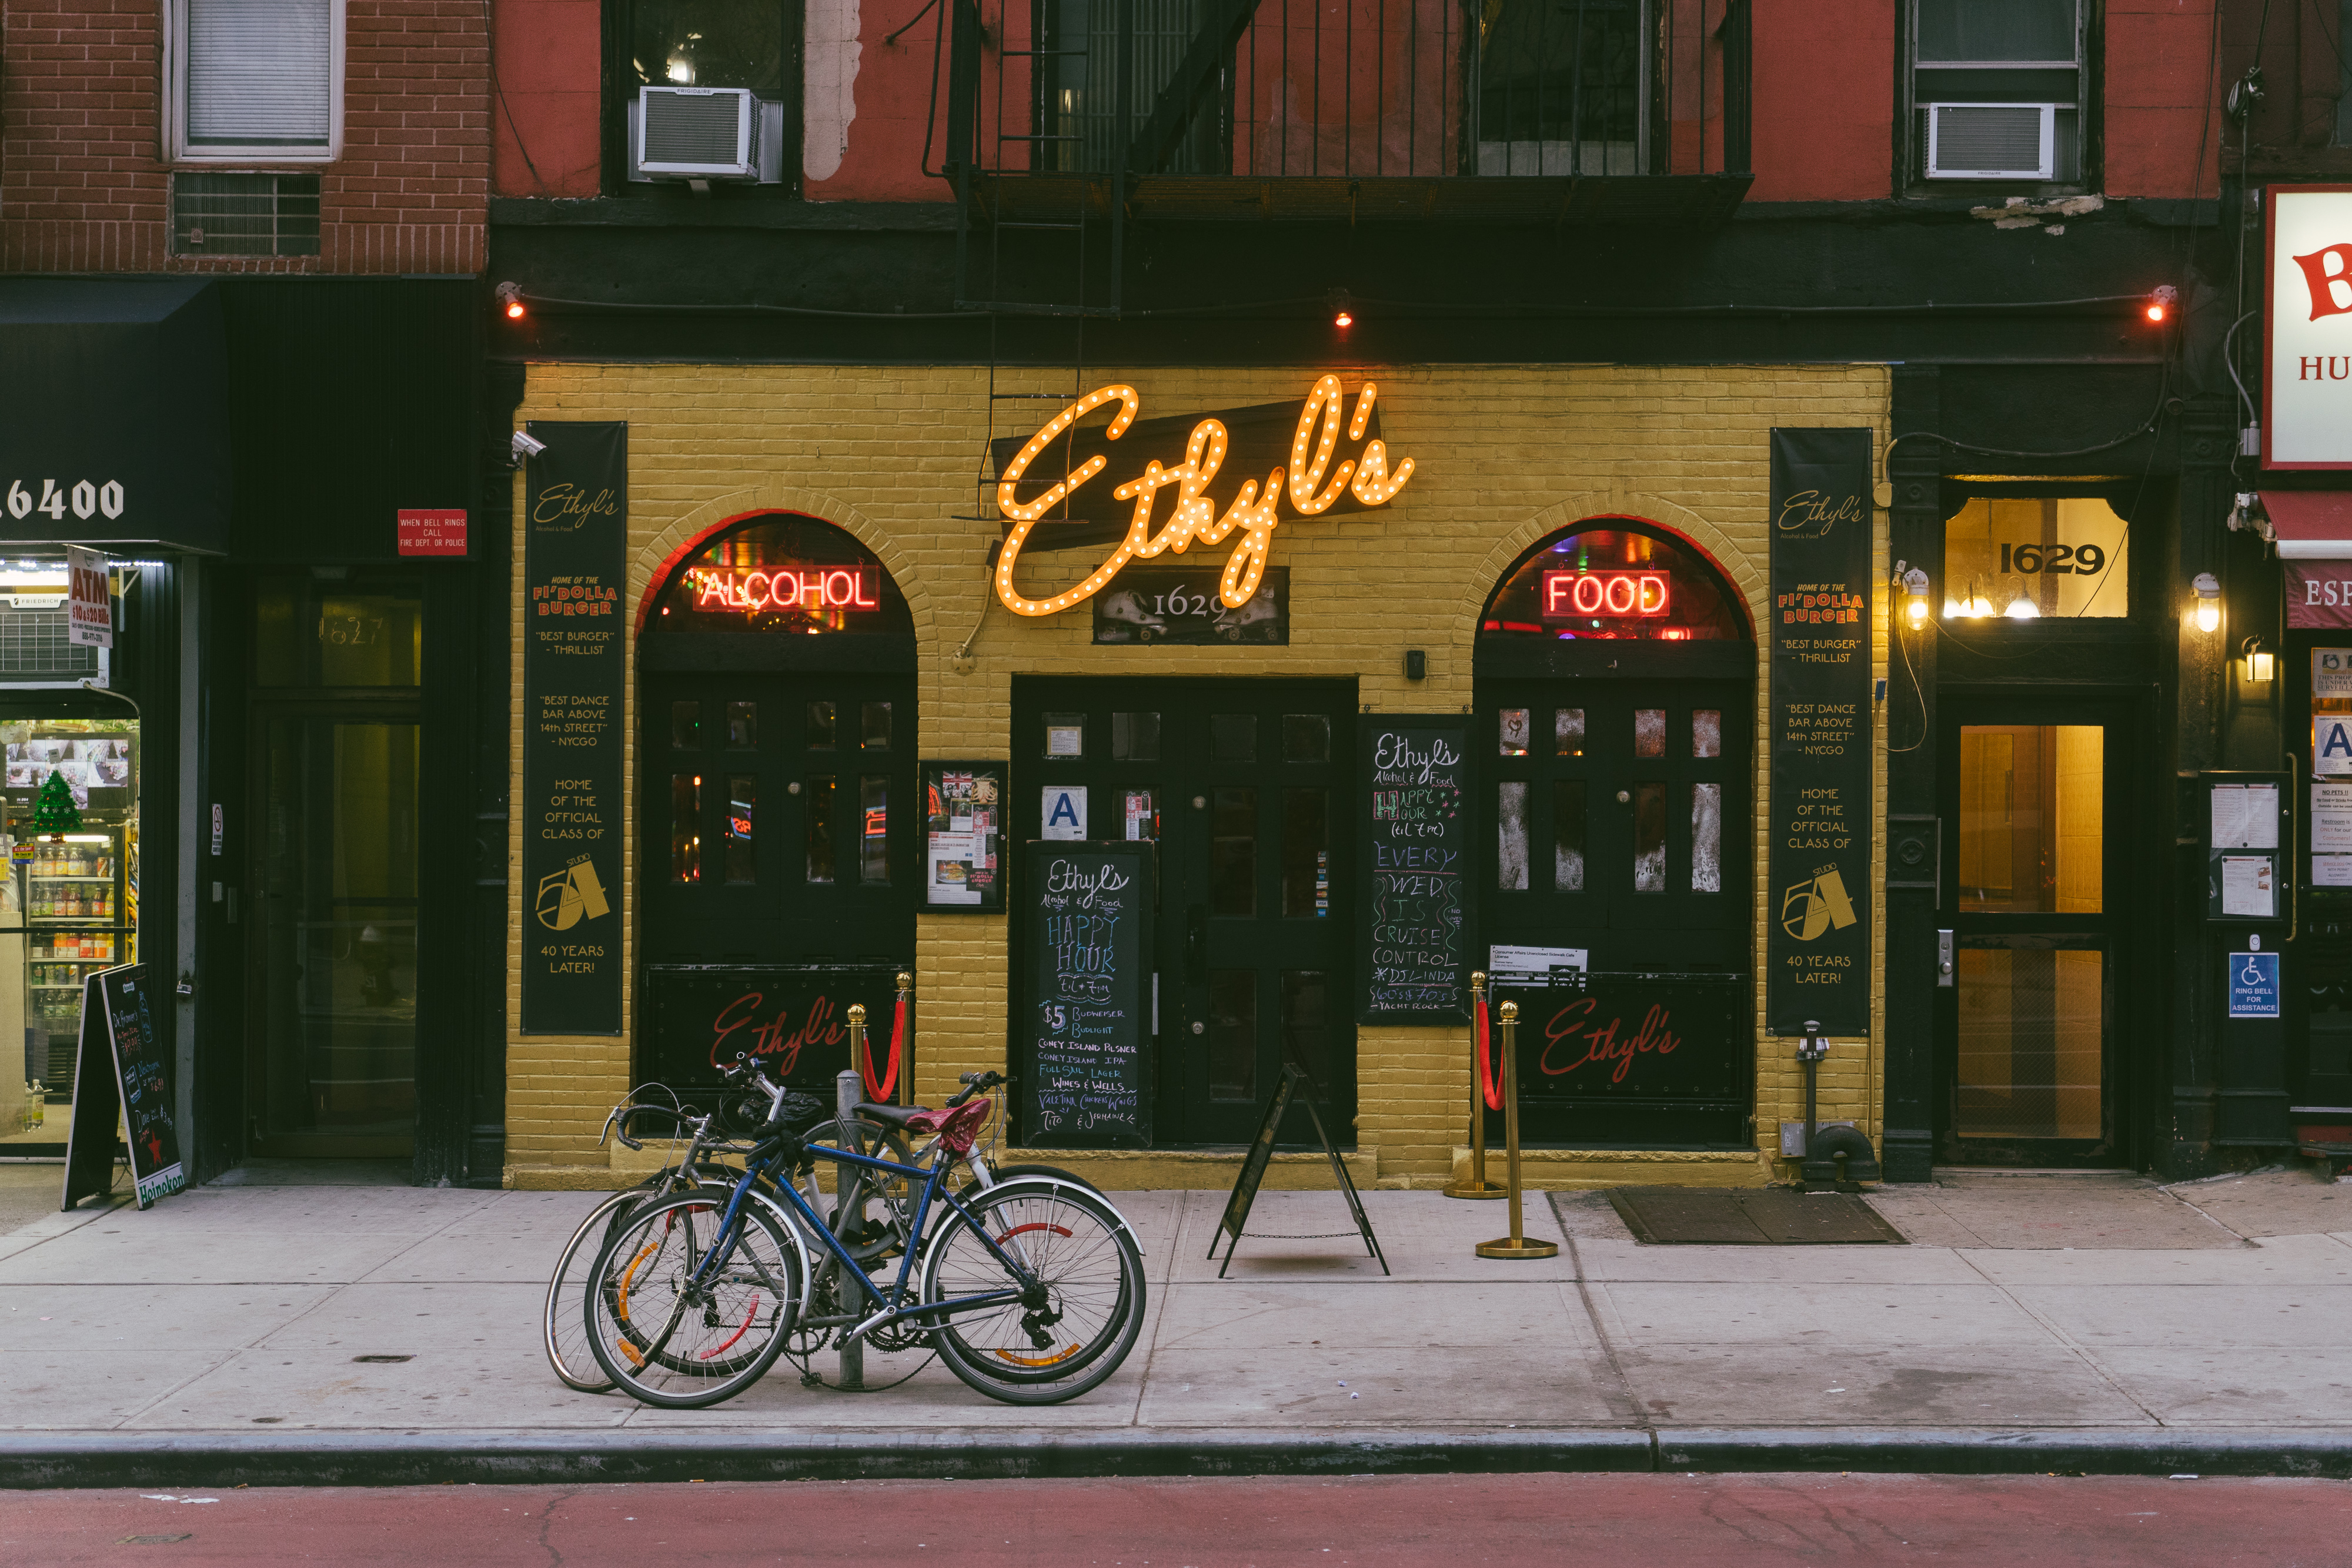 d445c676308b Where To Drink On The Upper East Side - Upper East Side - New York - The  Infatuation